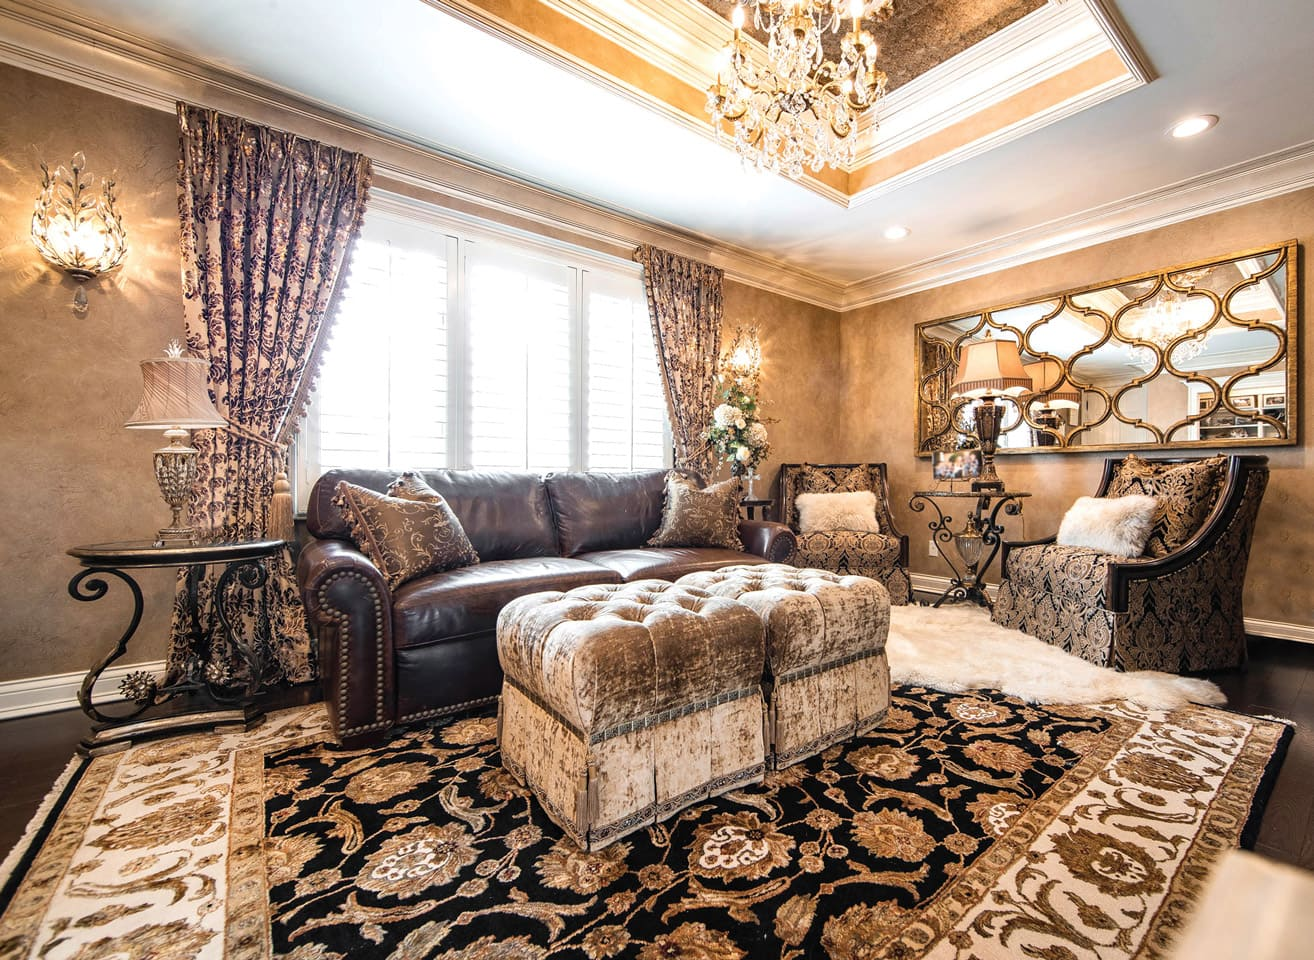 Living Room and Family Room Design - Linly Designs on Living Room Design Ideas  id=13089